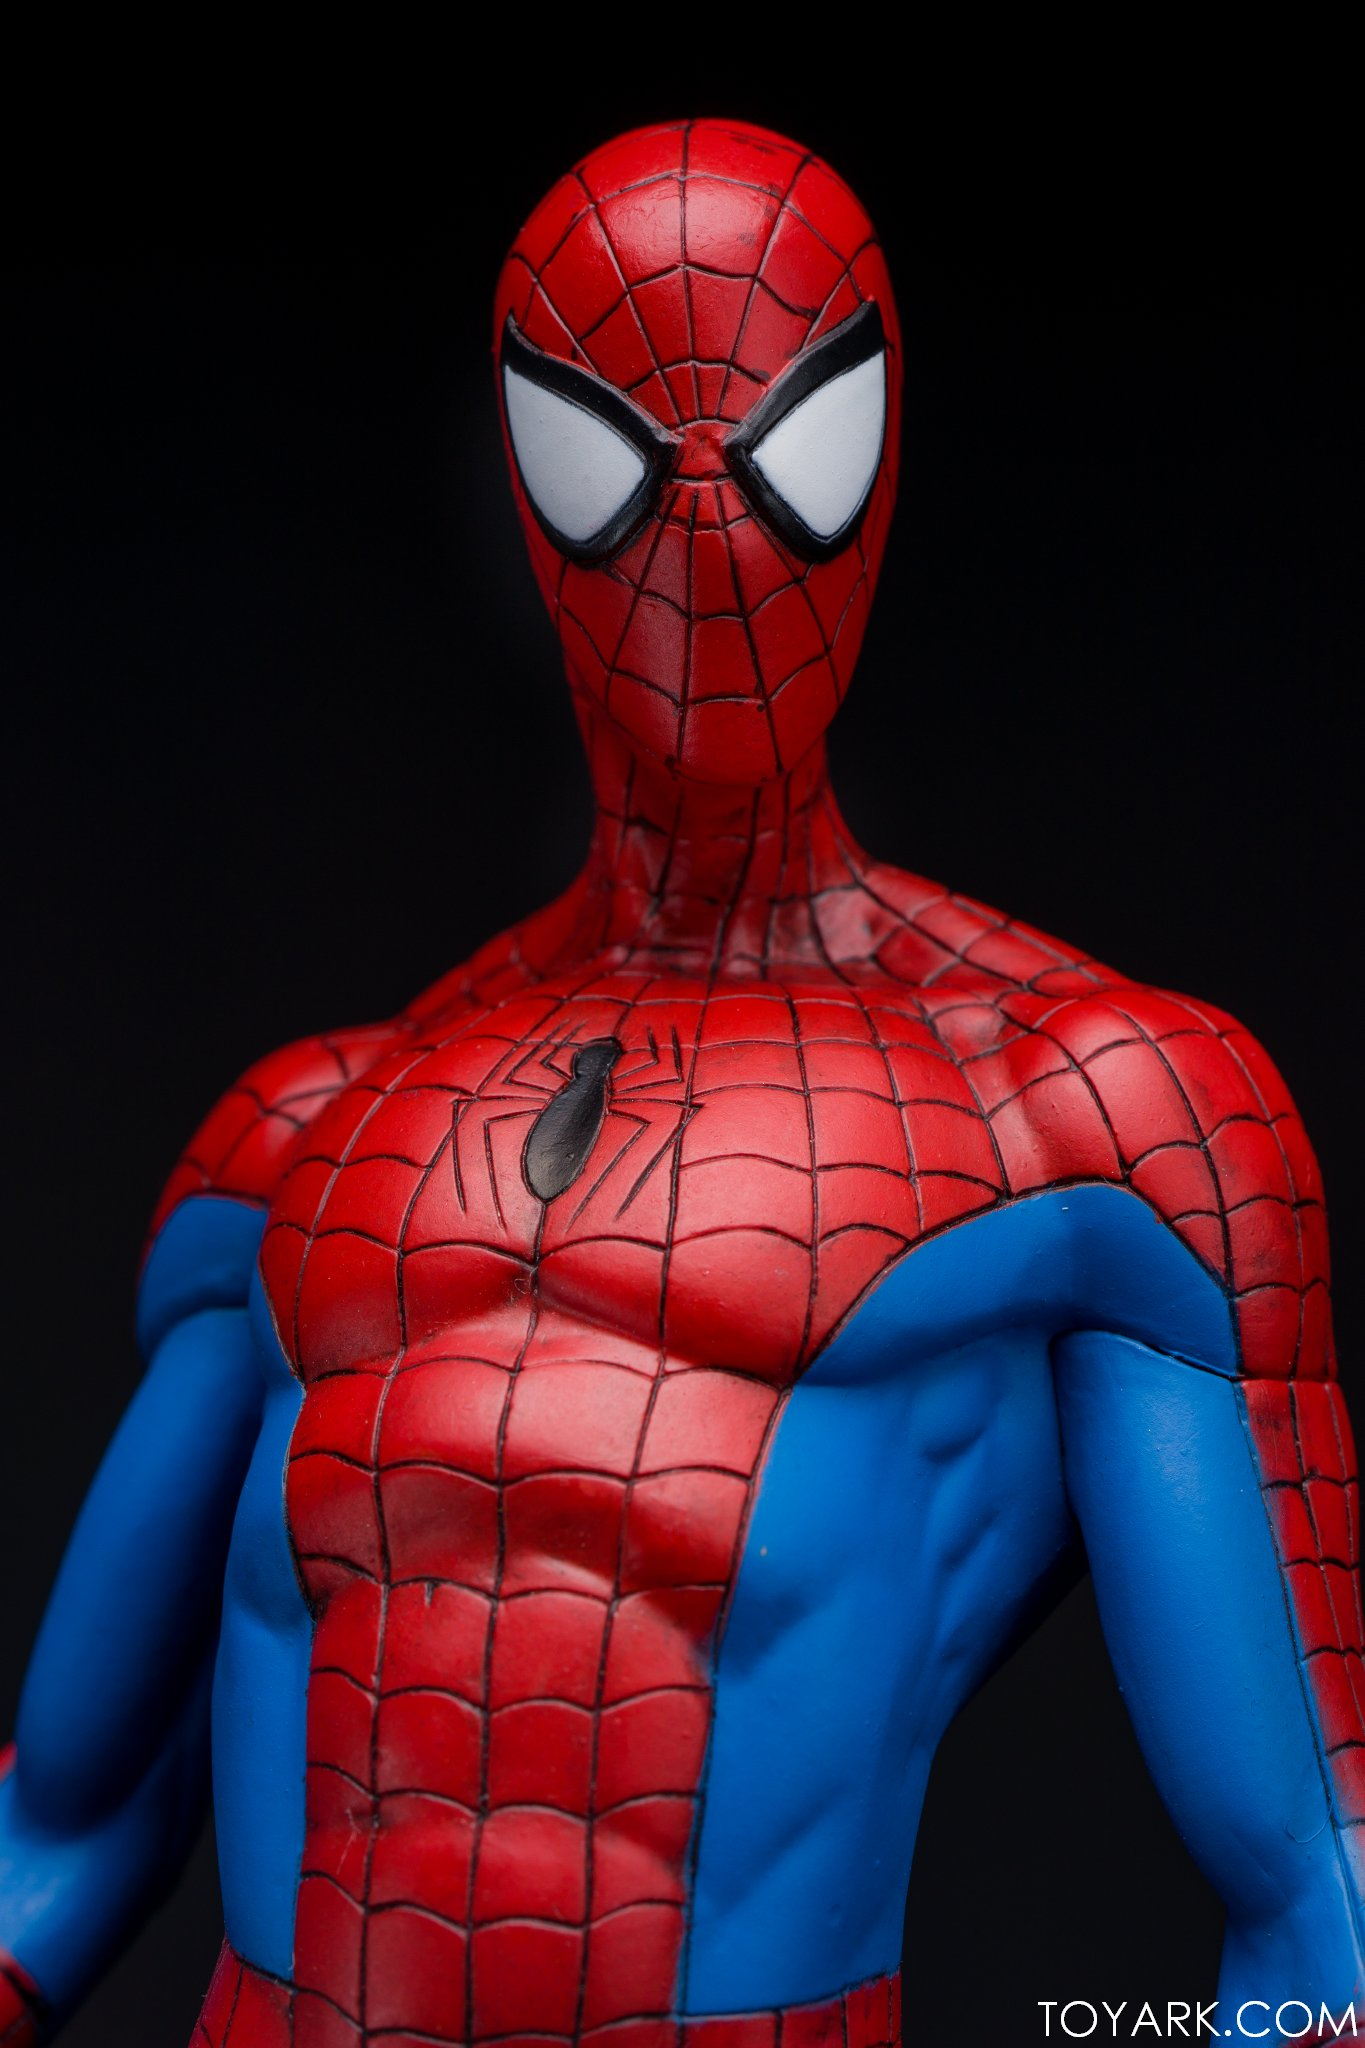 DST Marvel Gallery Spider-Man Photo Review - The Toyark - News